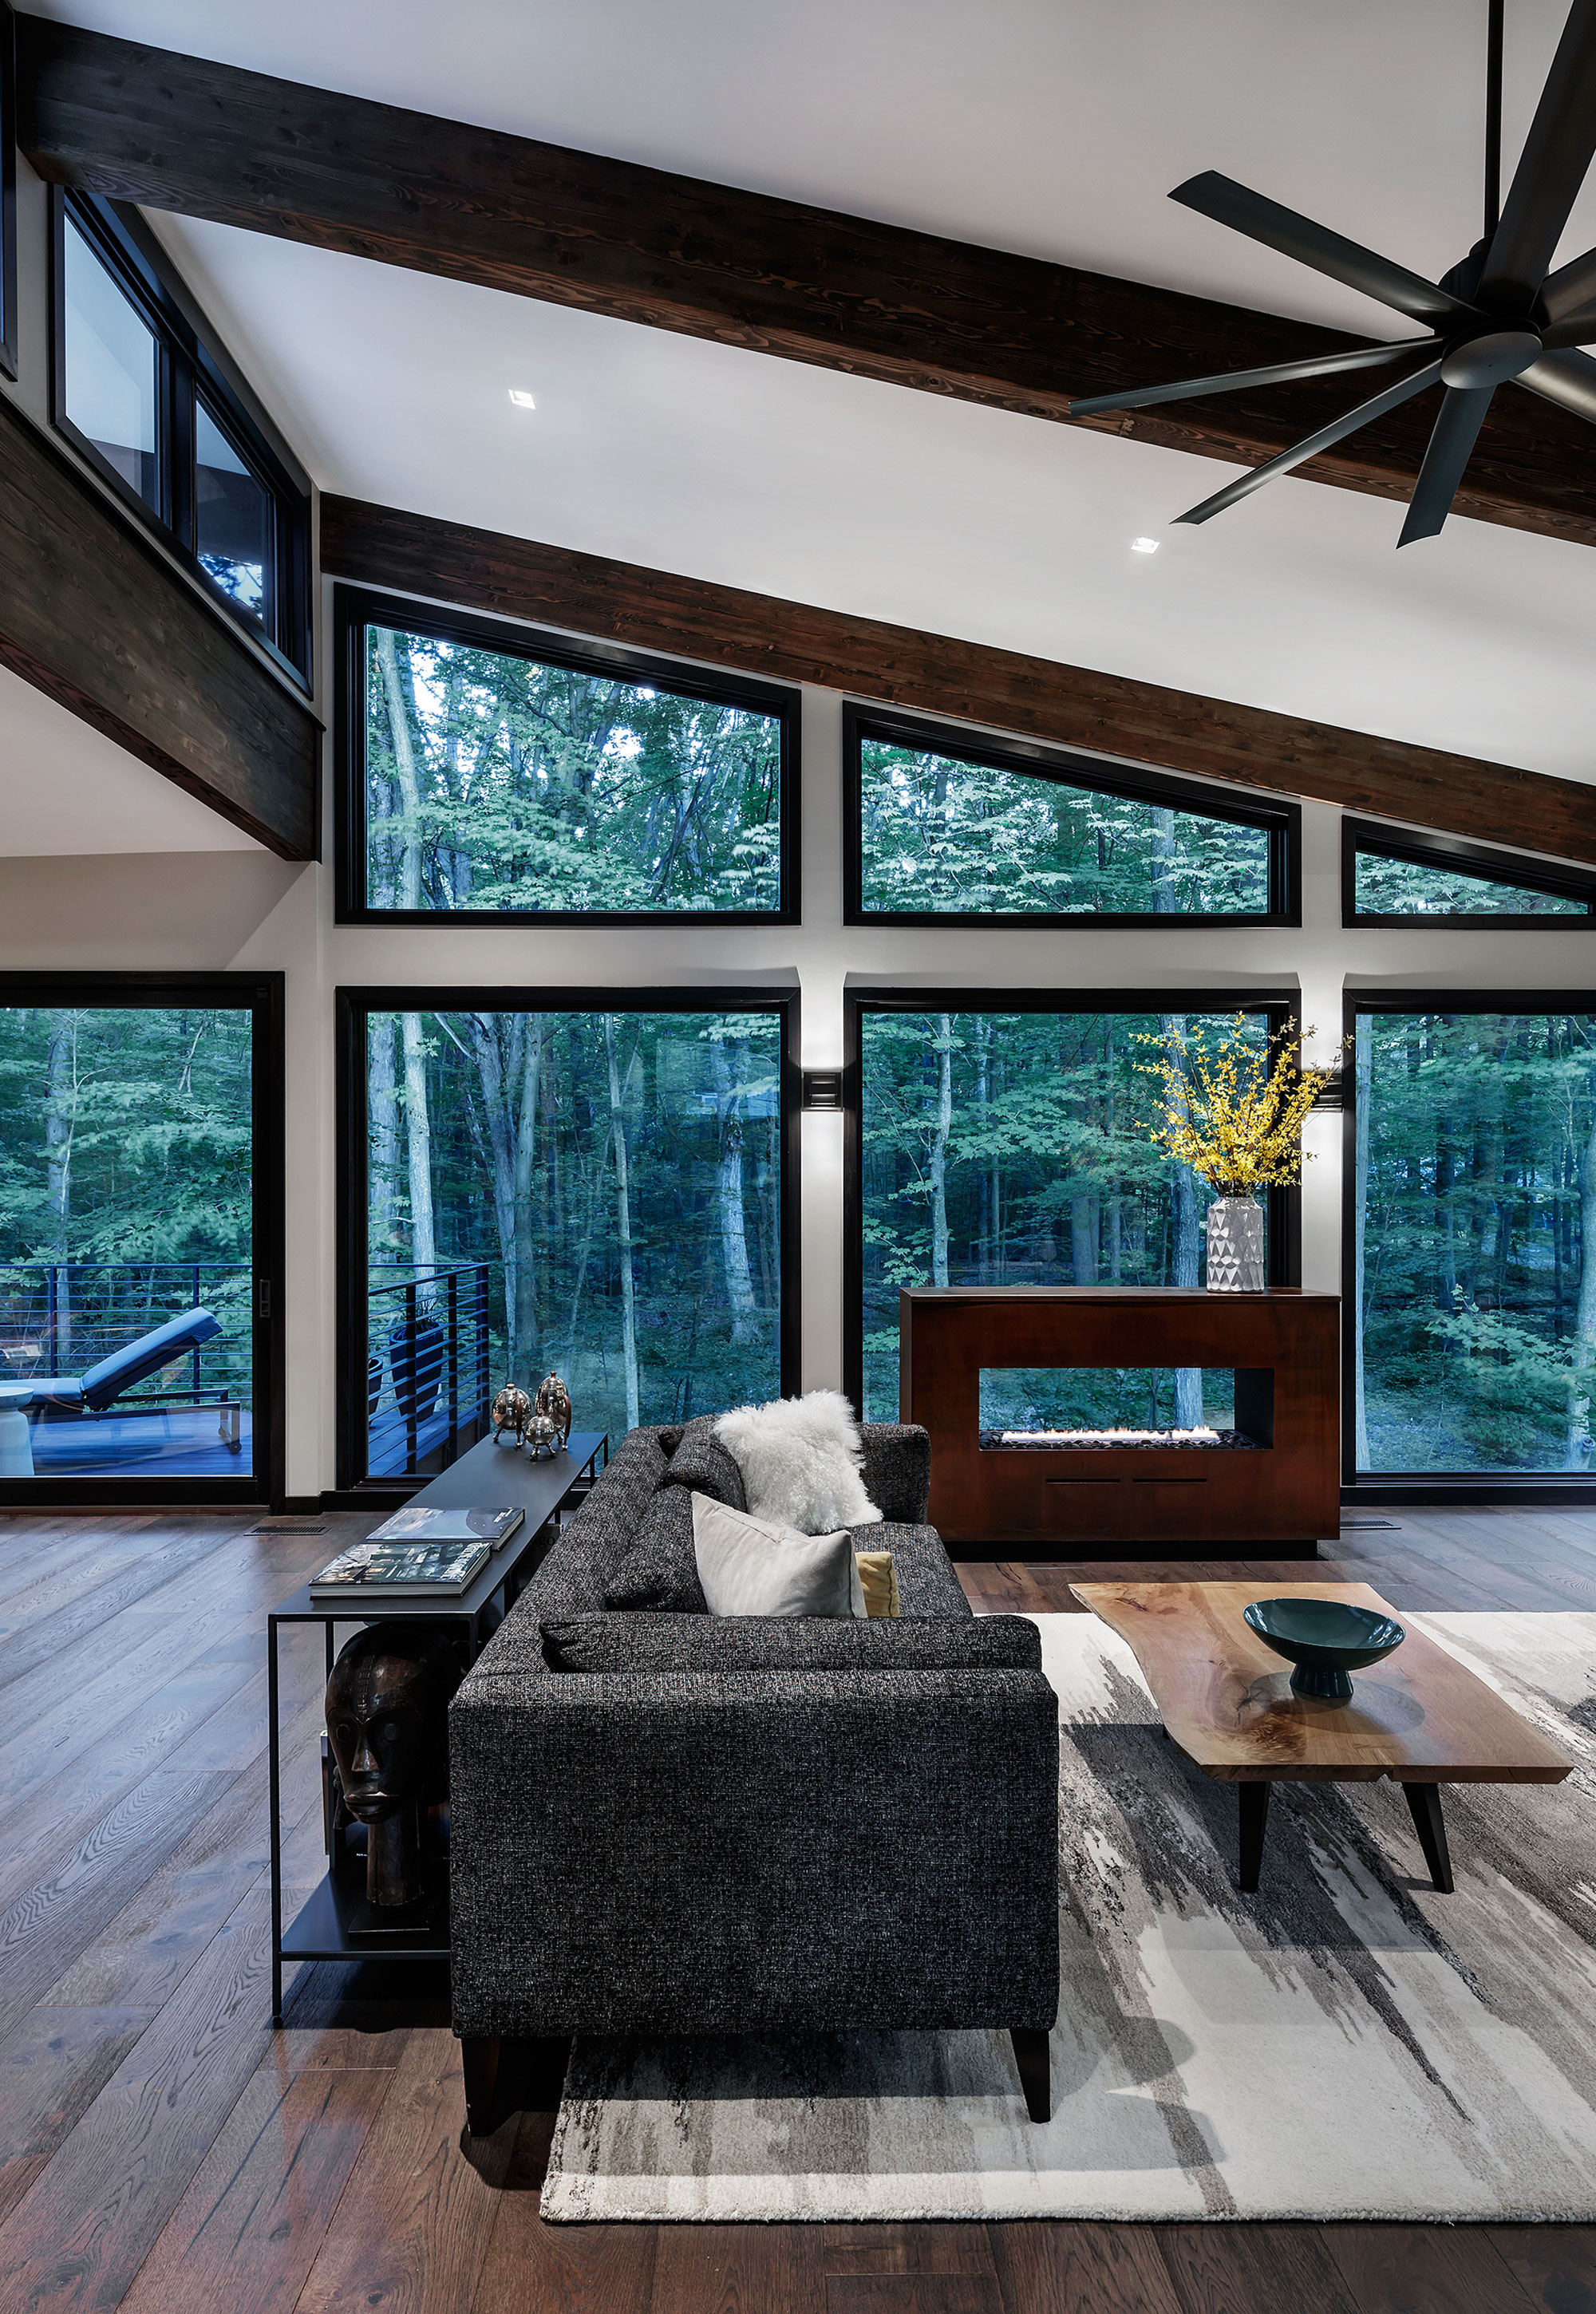 Living room with sofa and a view into a forest